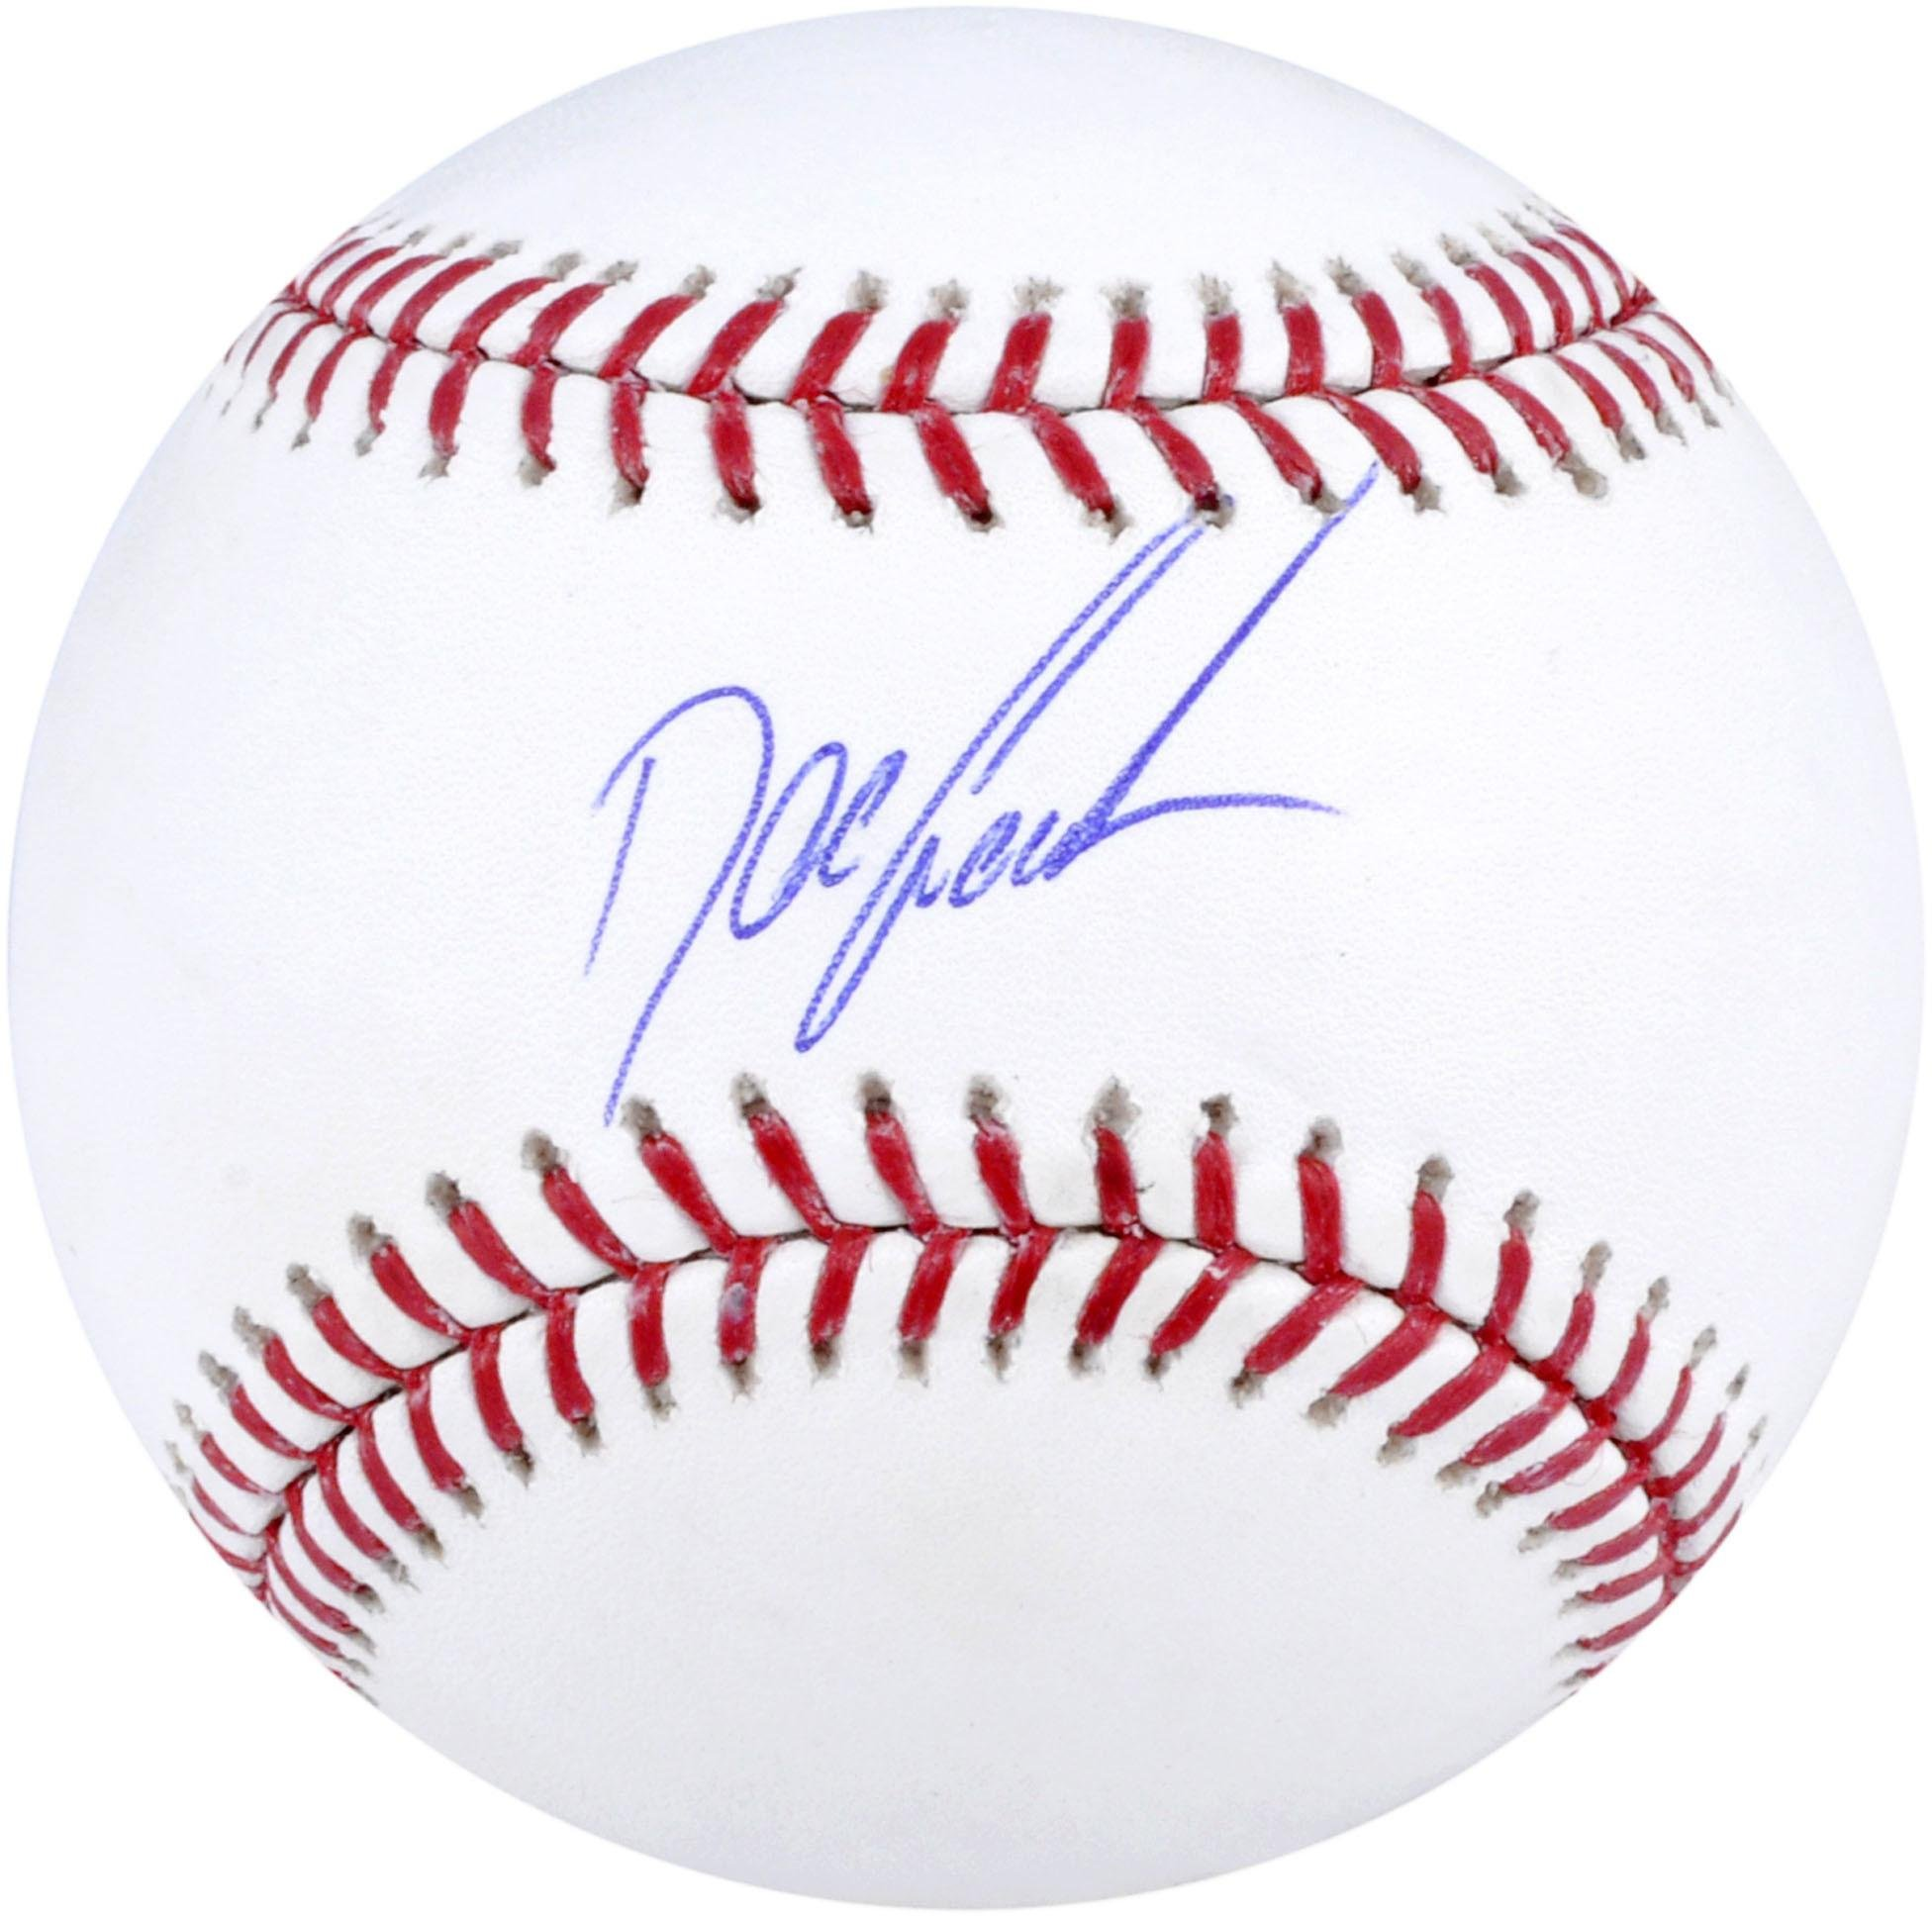 Dwight Gooden New York Mets Autographed Baseball Fanatics Authentic Certified Autographed Baseballs